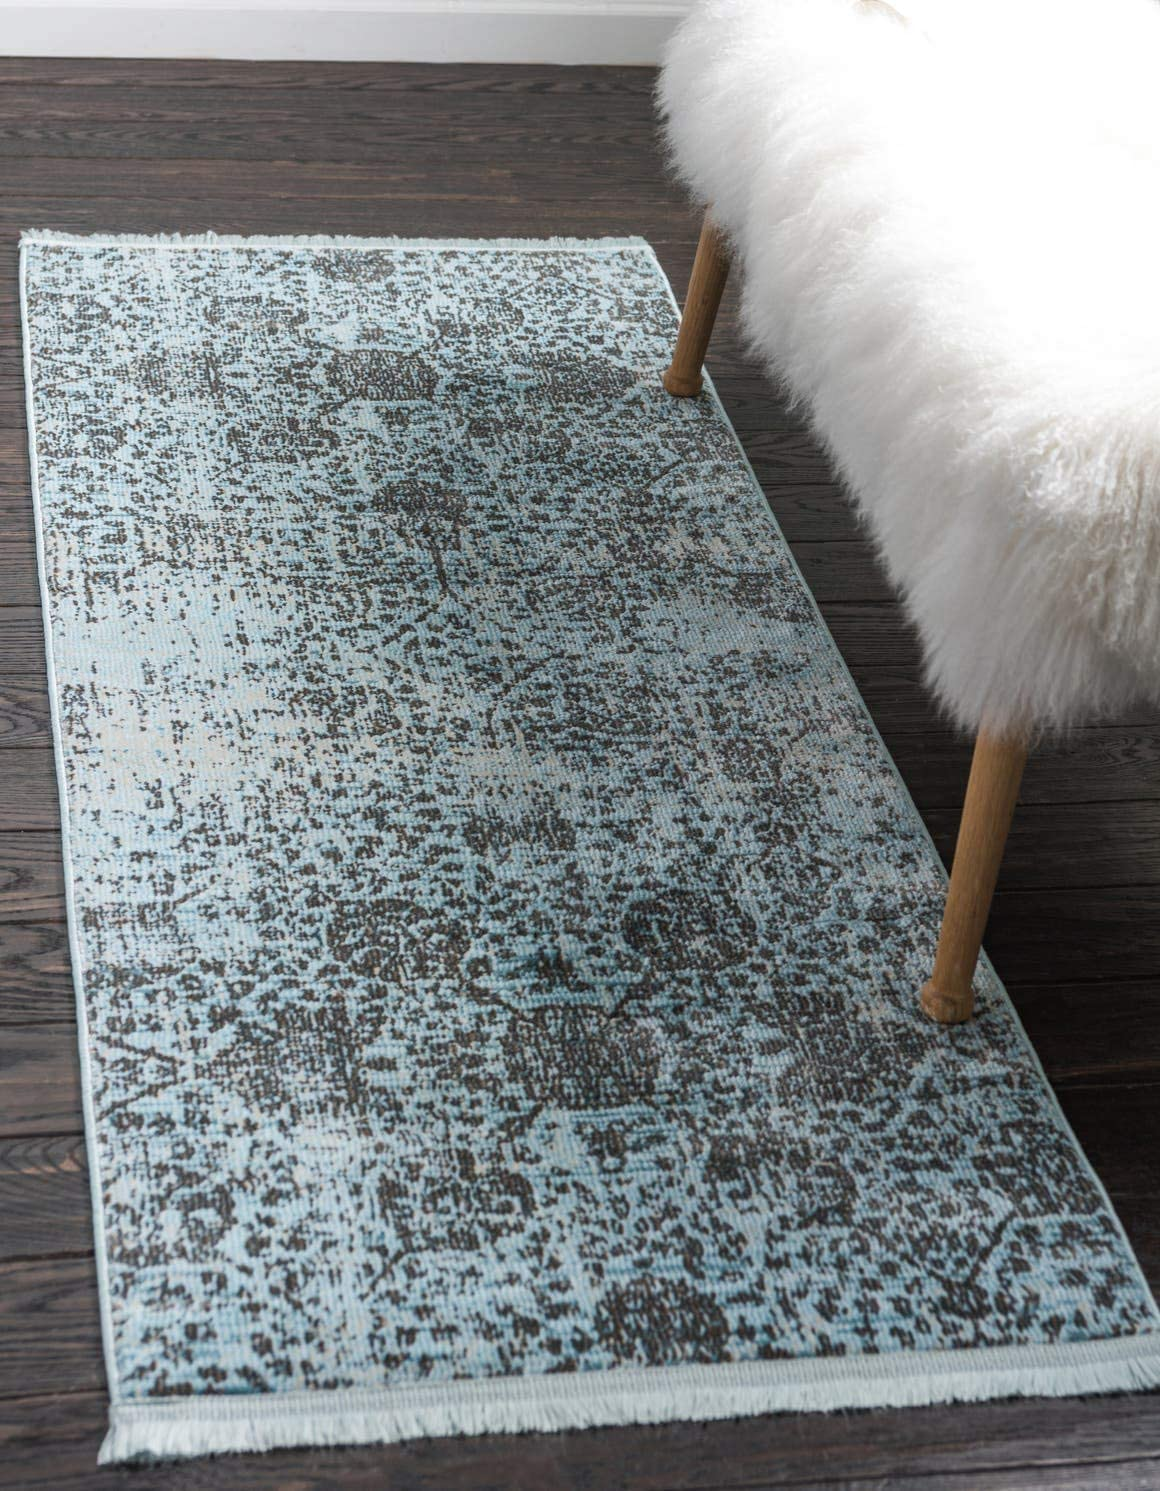 Unique Loom Baracoa Collection Bright Tones Vintage Traditional Light Blue Runner Rug 2 2 x 6 0